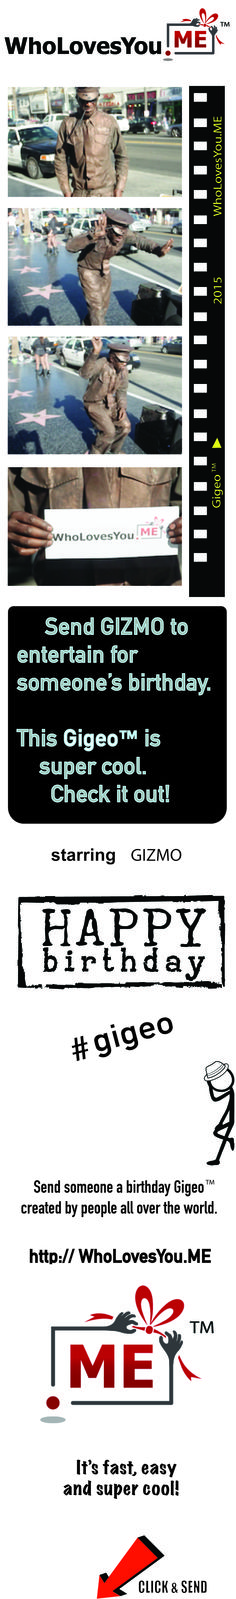 $15   http://www.wholovesyou.me/birthday/gifts/gizmo_performs_his_statue_dance_gigeo   Music and dance lovers will appreciate receiving a Happy Birthday wish Gigeo™ from Goldmine the Mechanical Robot. This is a personalized greeting and performance by the original gold man, who has received international acclaim for his goldmine costume and his mechanical robot animated dance to catchy rap music.   #gigeo  http://WhoLovesYou.ME